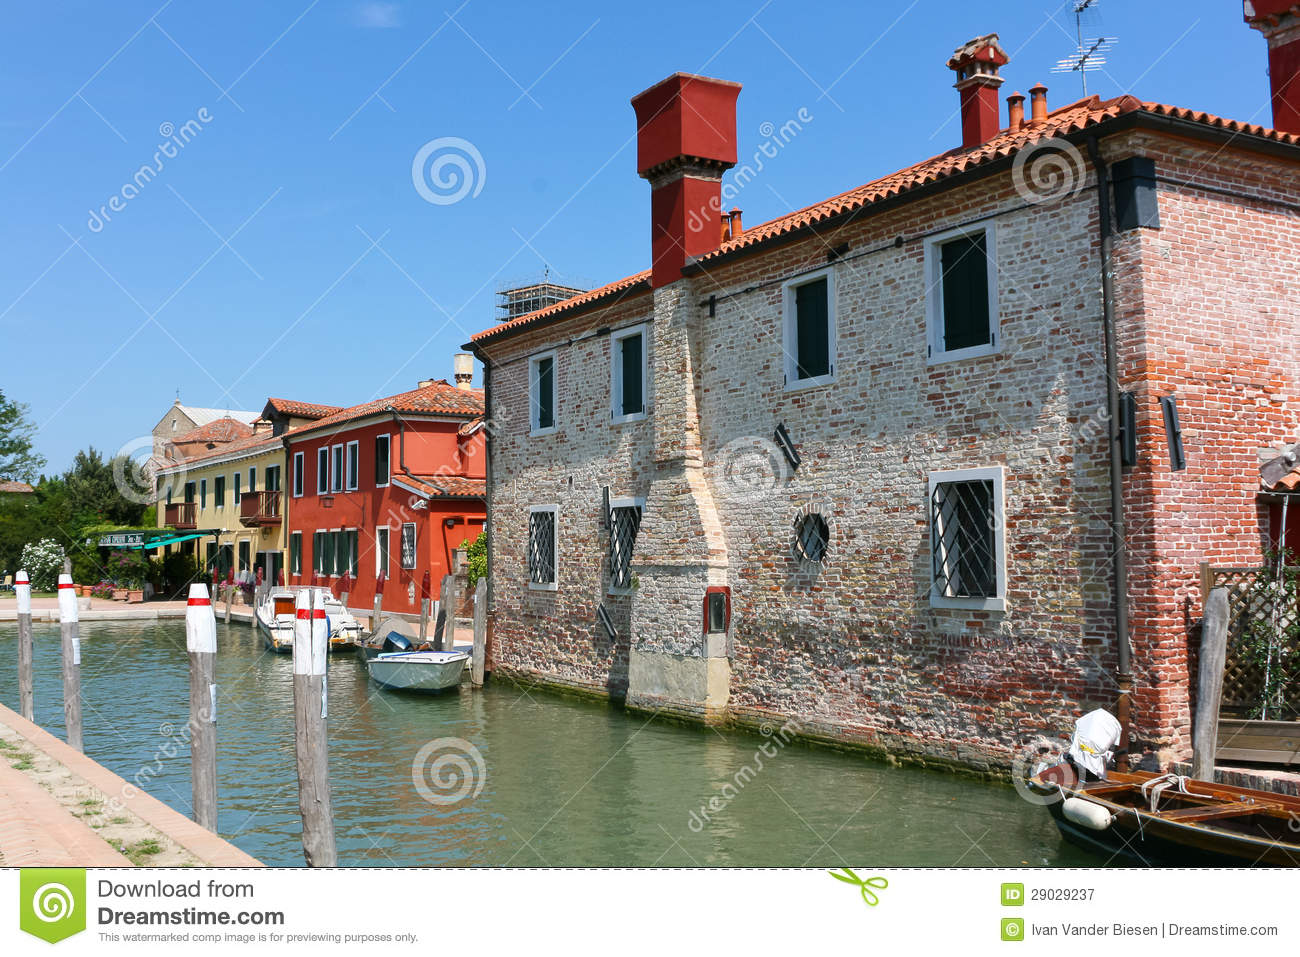 Canale e case in Torcello